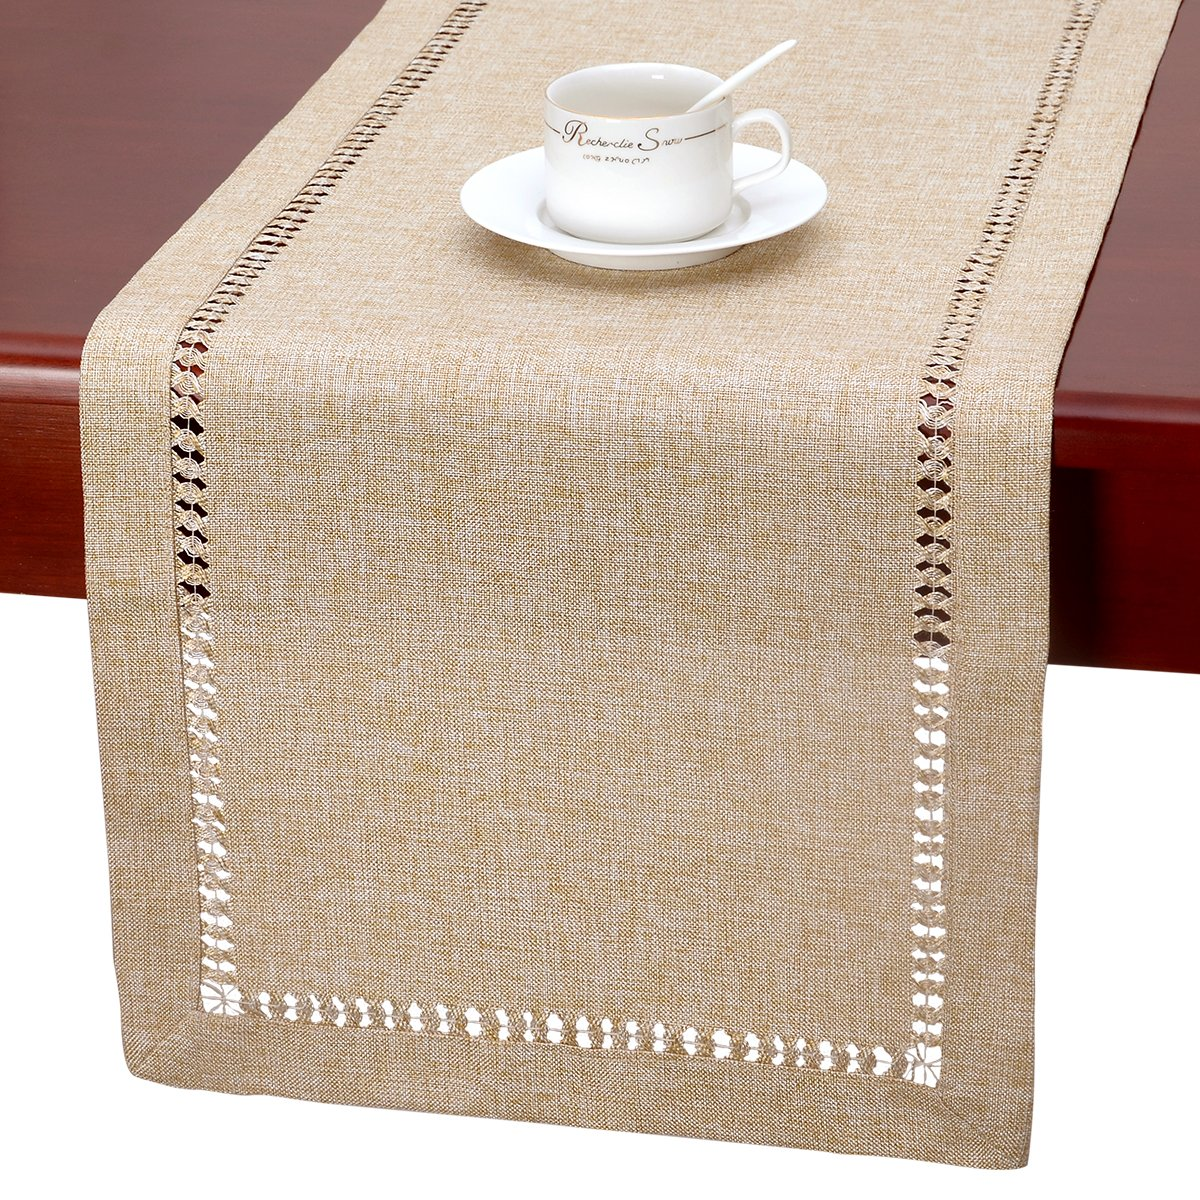 Grelucgo Handmade Hemstitch Beige Table Runner Or Dresser Scarf, Rectangular 14 by 120 Inch